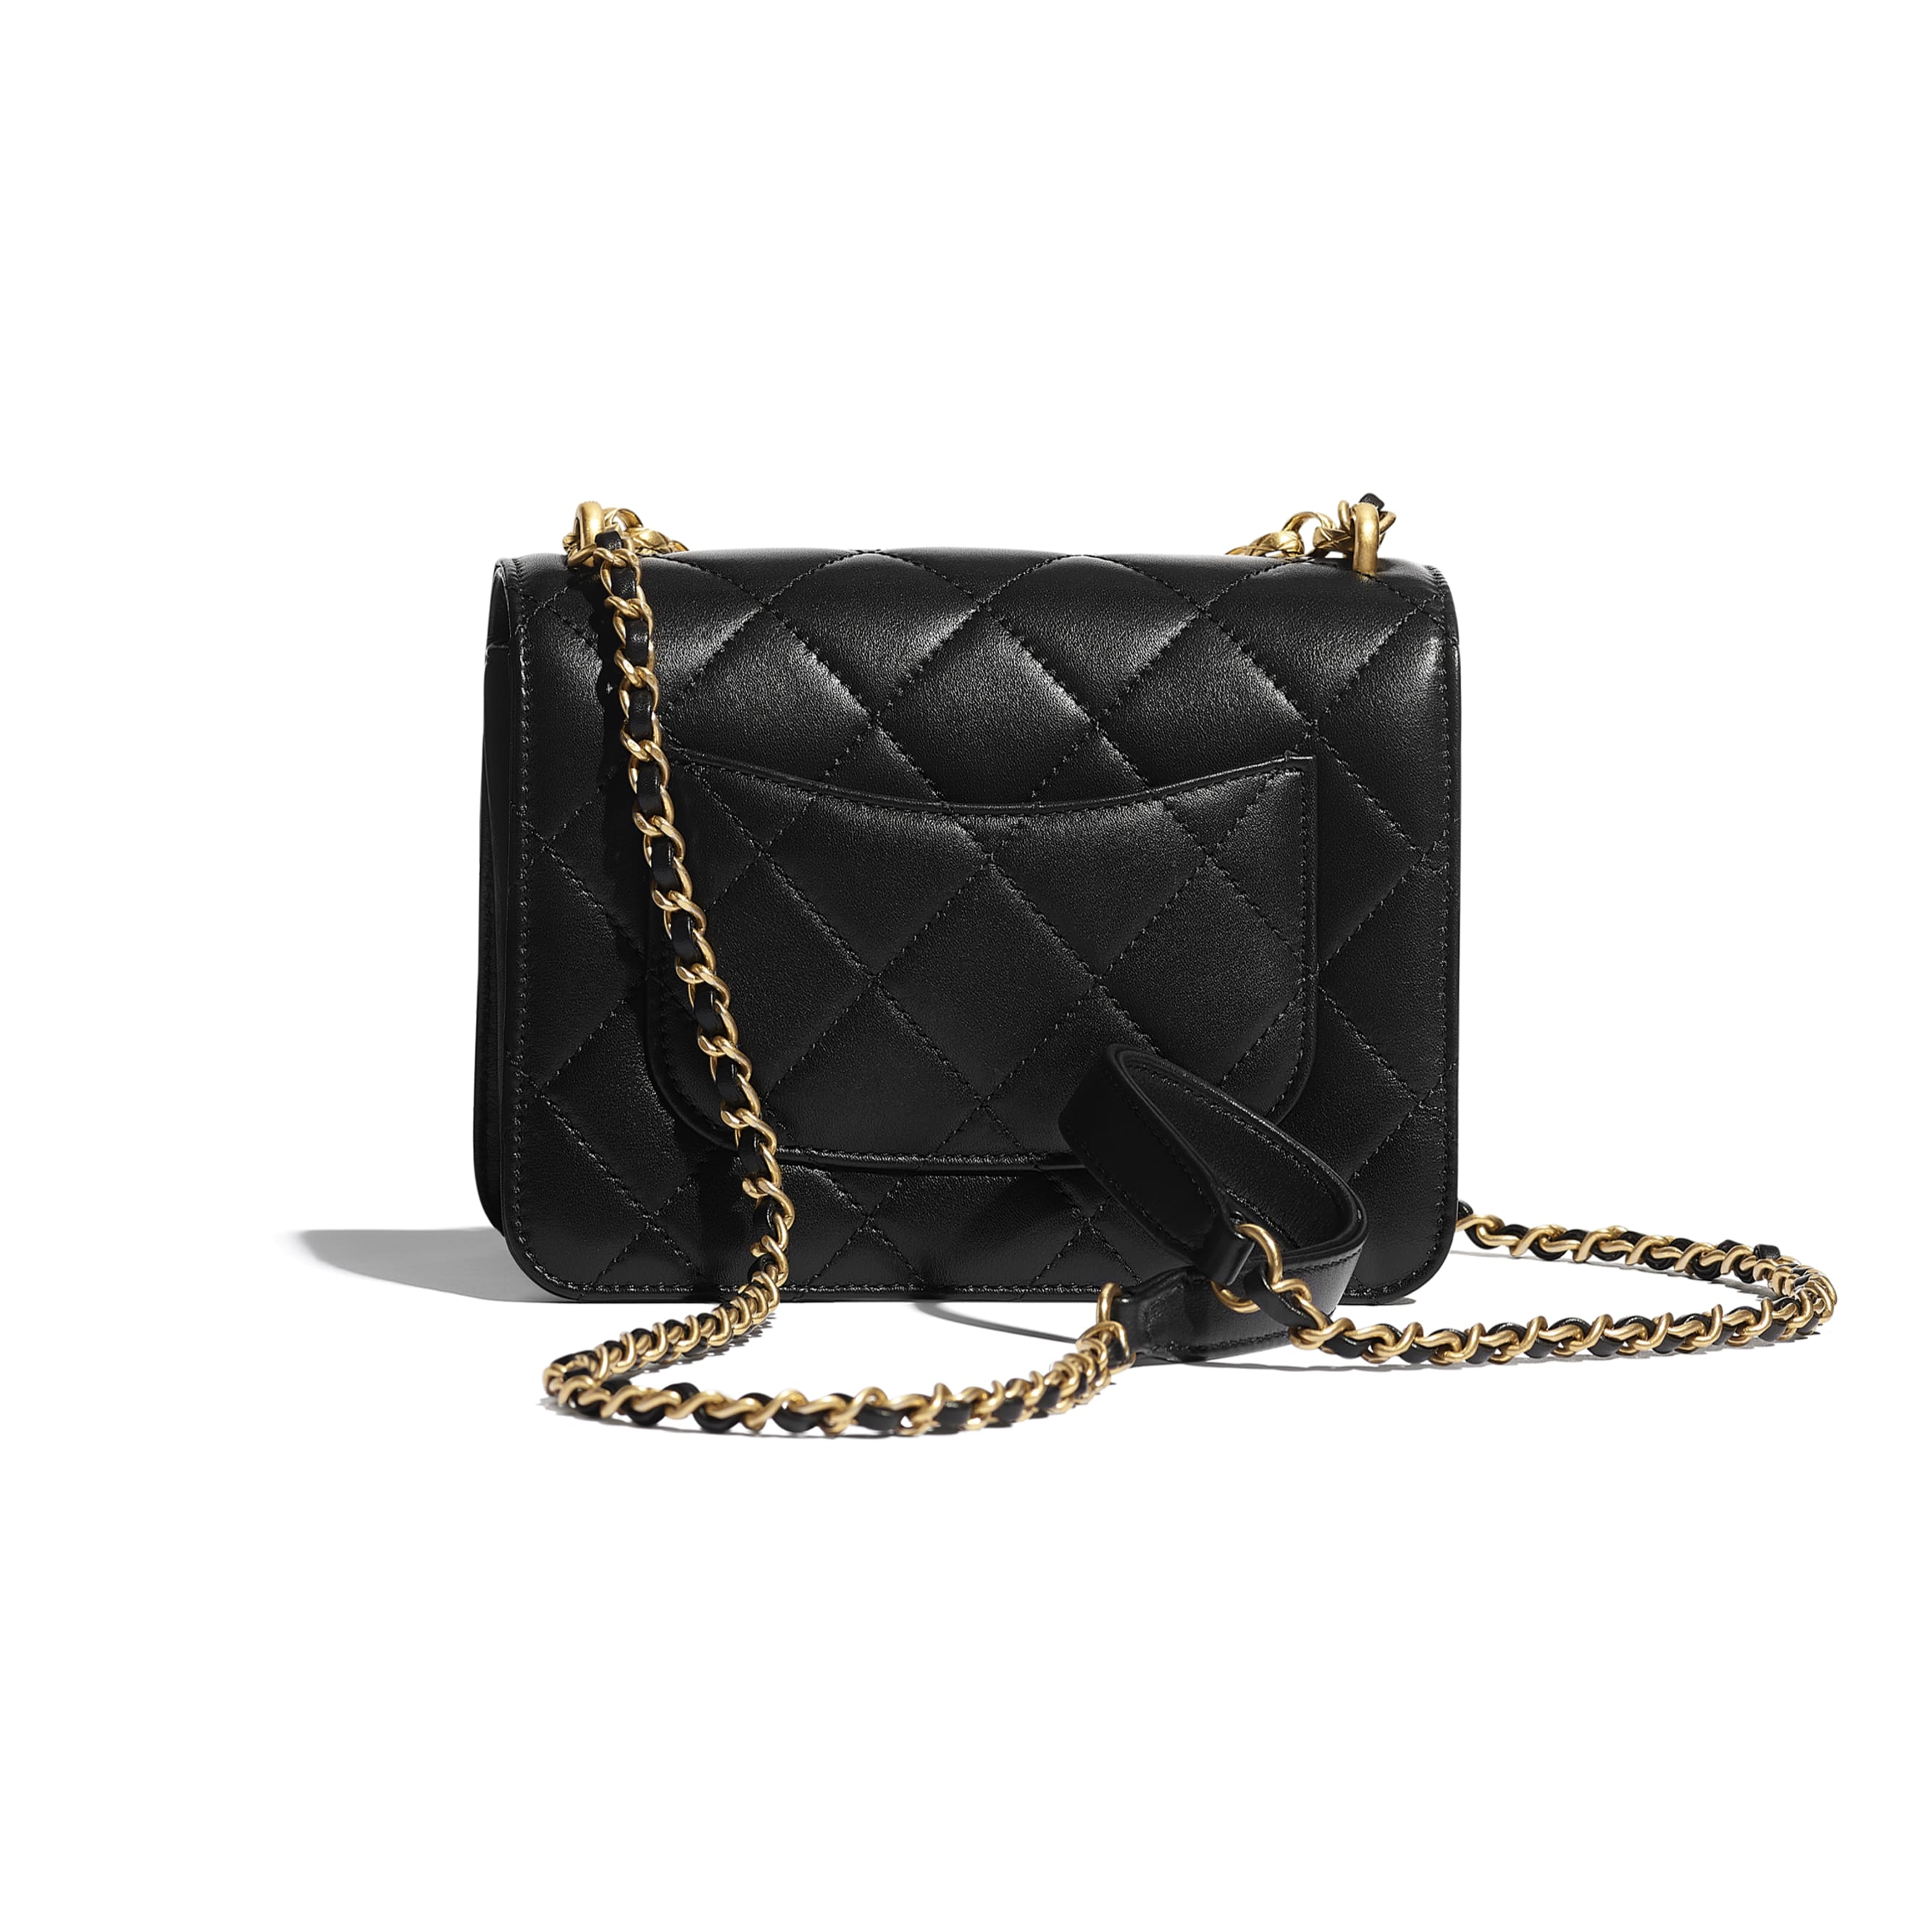 Flap Bag - Black - Calfskin, Onyx, Pearls & Gold-Tone Metal - CHANEL - Alternative view - see standard sized version